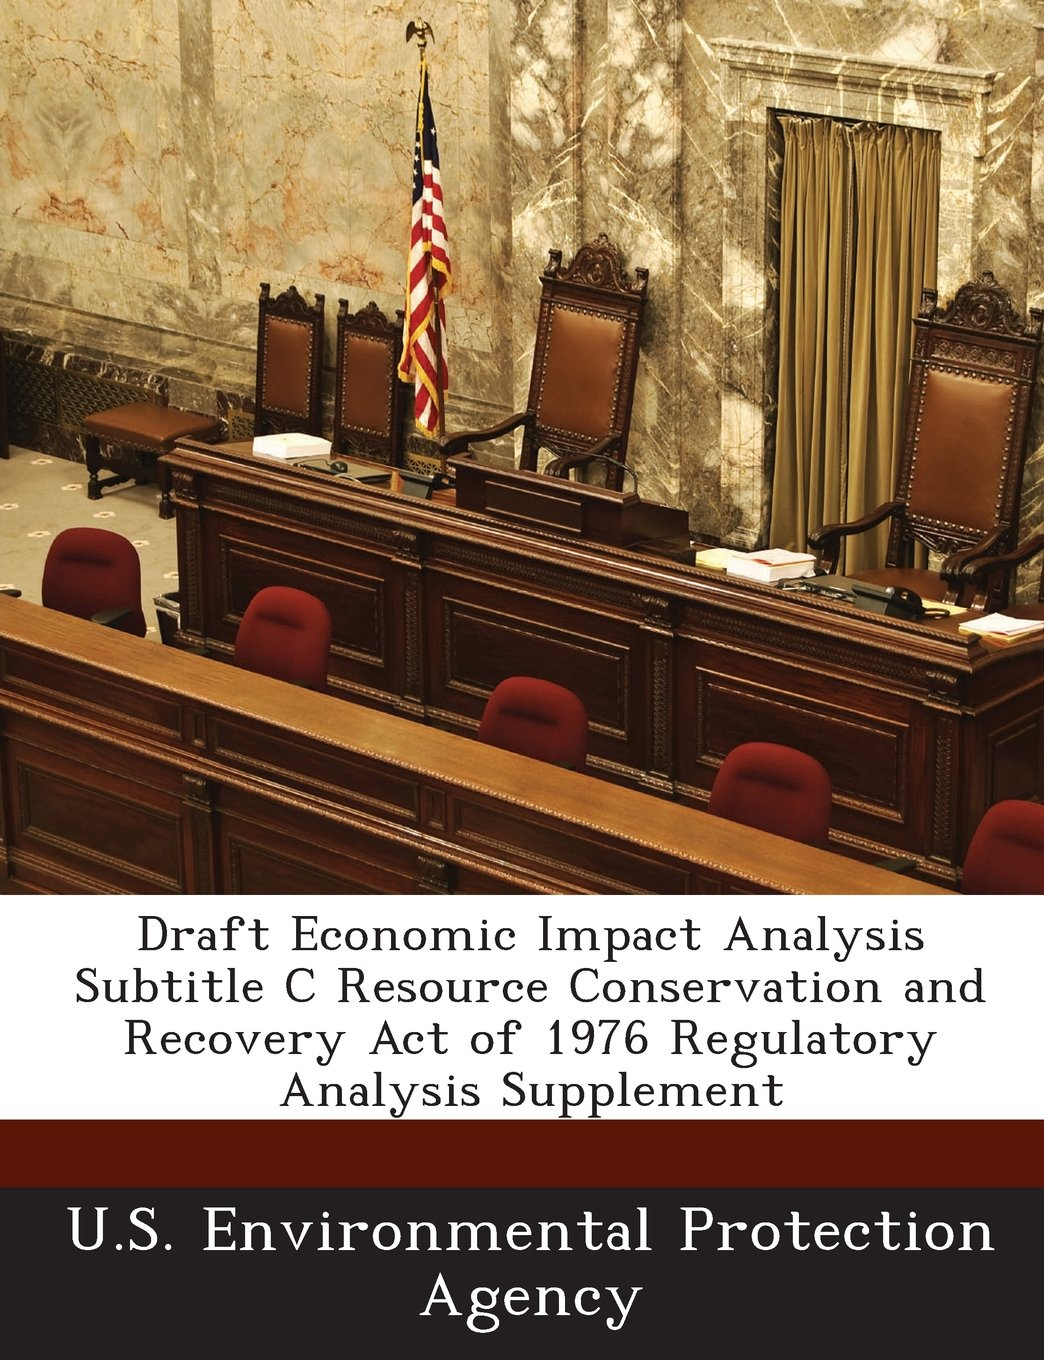 Draft Economic Impact Analysis Subtitle C Resource Conservation and Recovery Act of 1976 Regulatory Analysis Supplement PDF